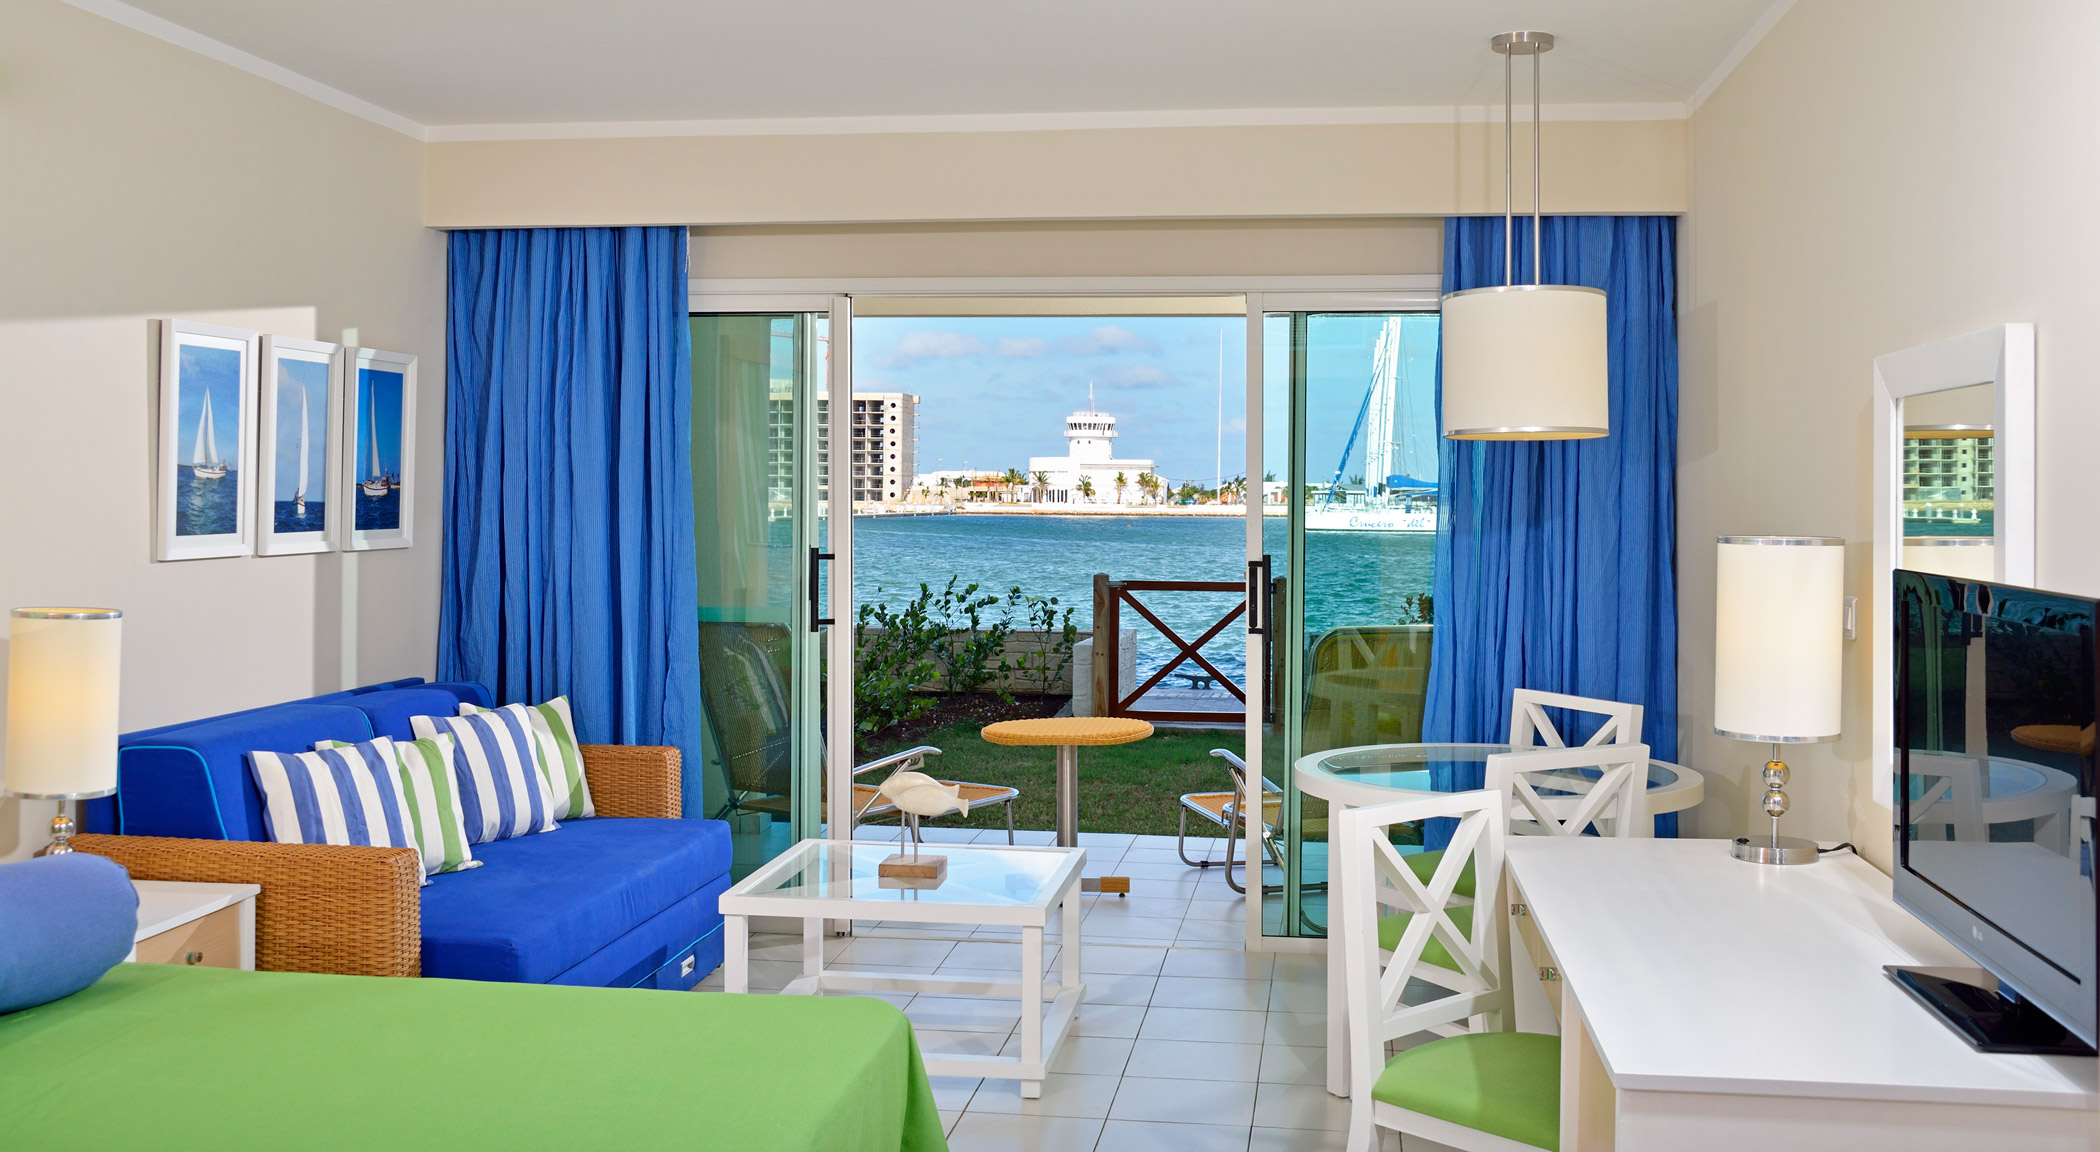 Melia marina varadero apartments varadero transat for Apartment space planner